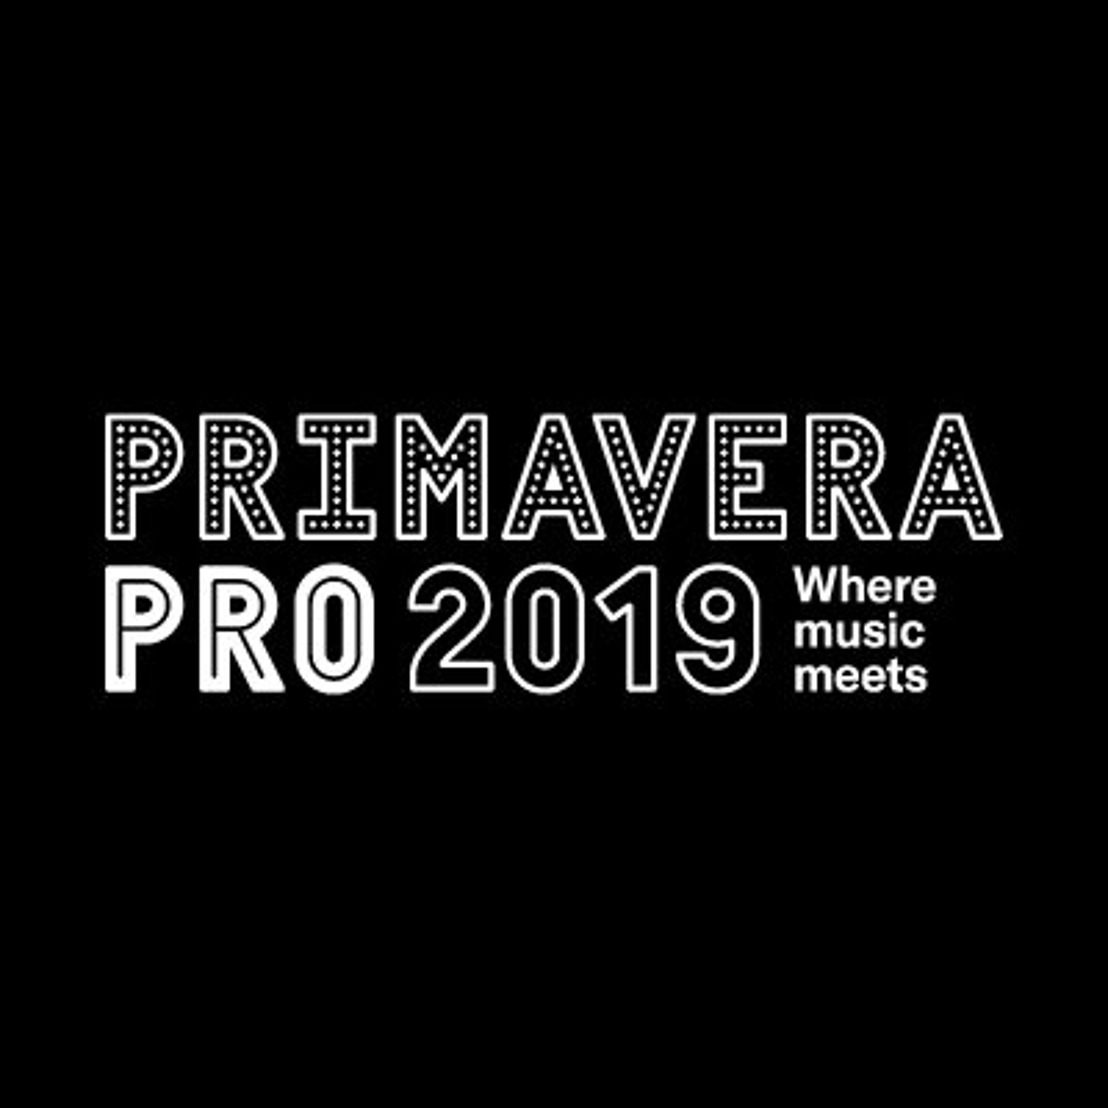 The identity of music - a debate at Primavera Pro 2019